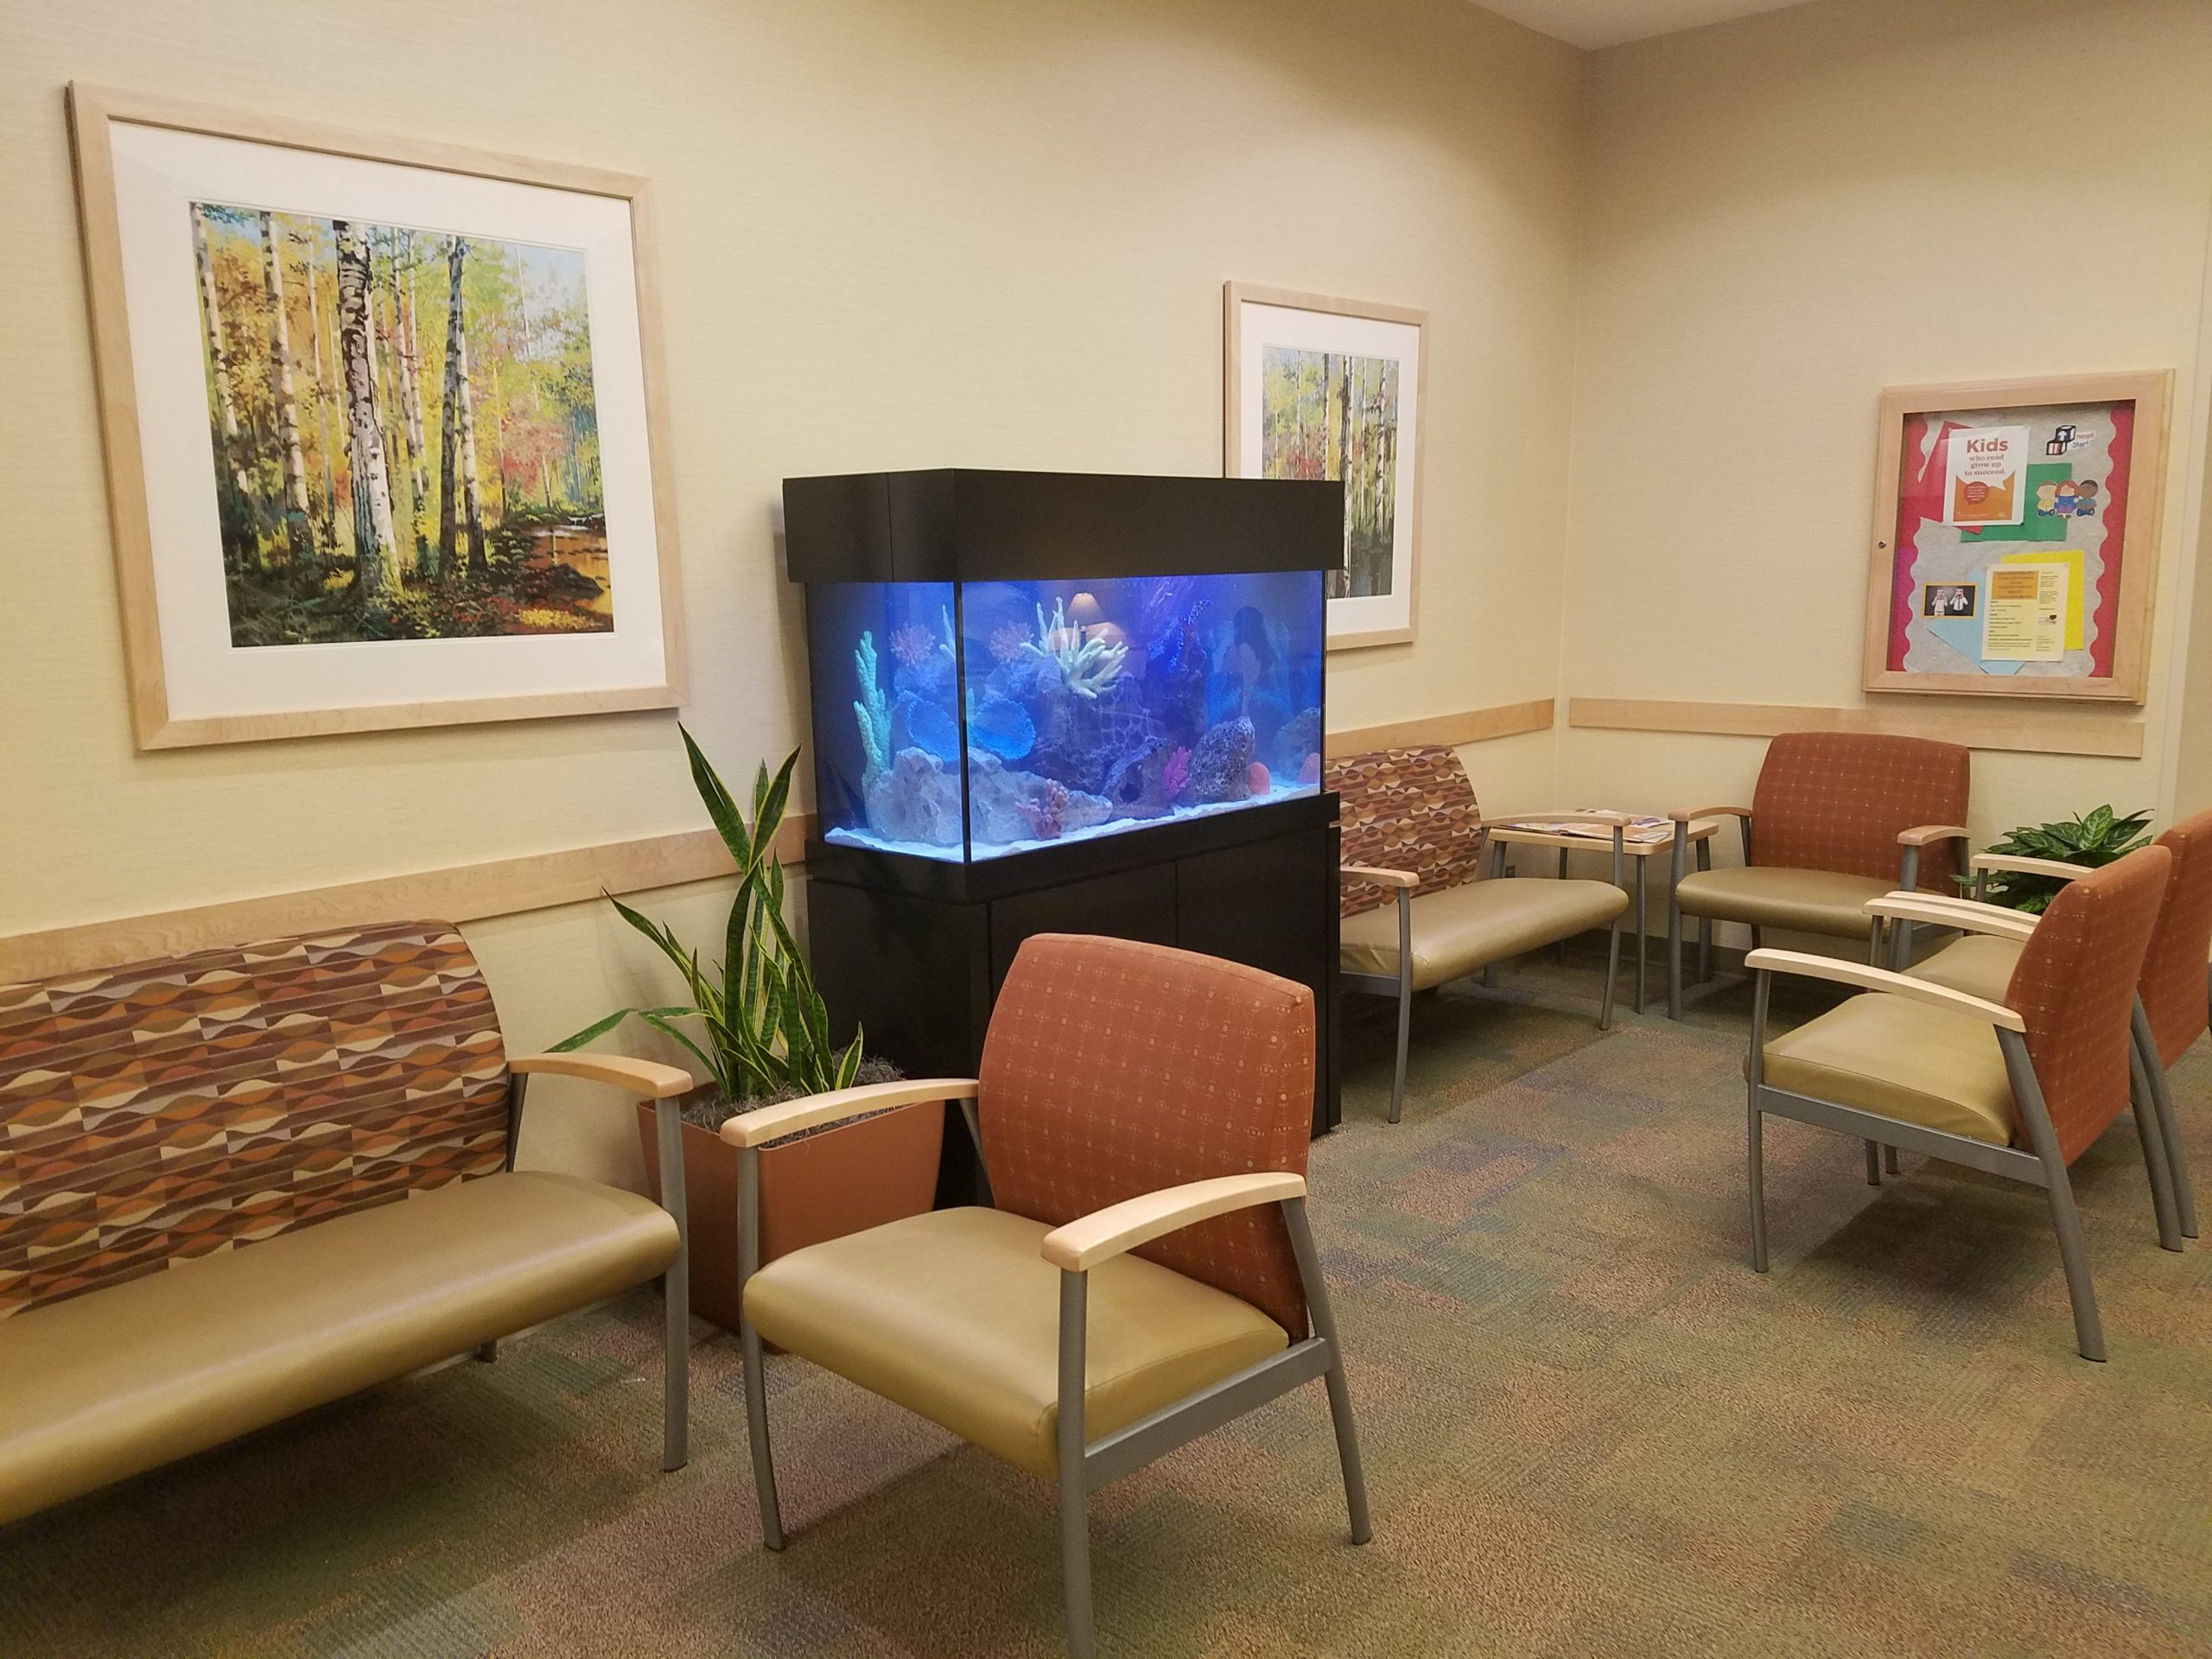 The Role of Aquariums in Overcoming Dental Phobia